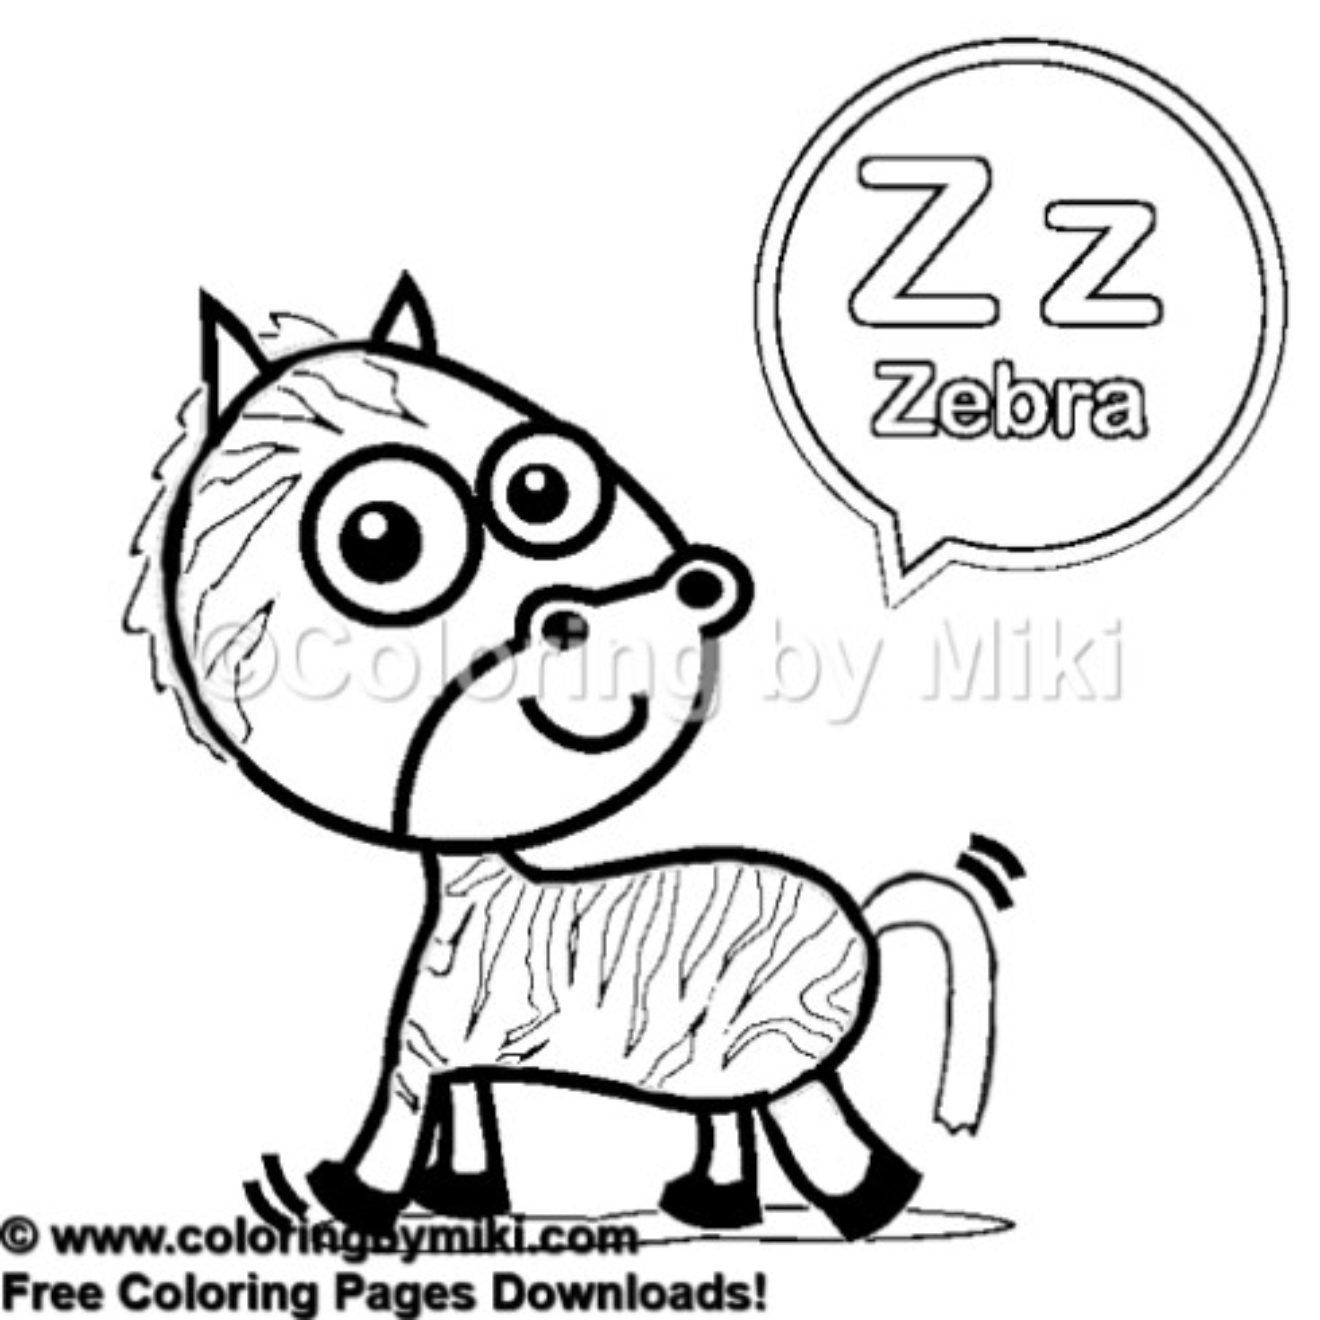 Alphabets z for zebra coloring page kidsactivities